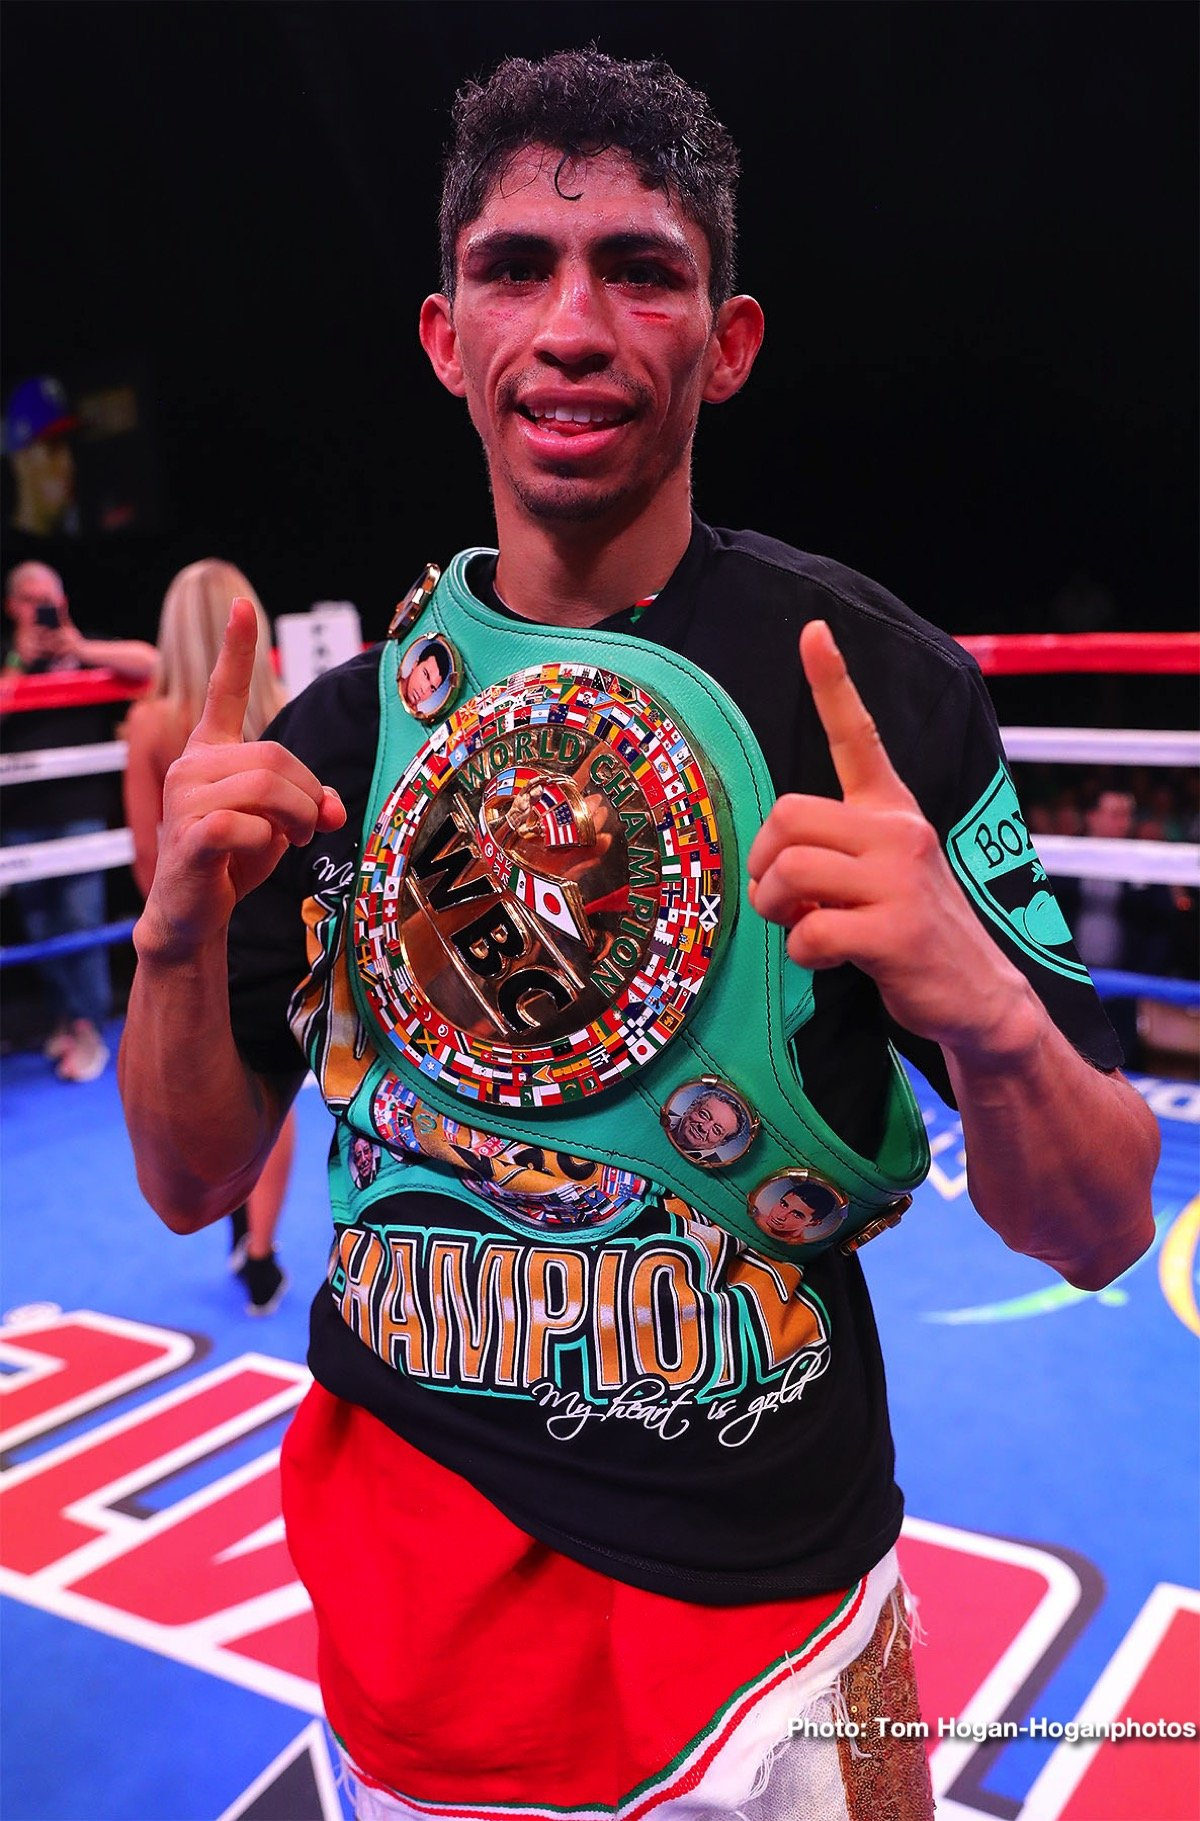 "Joet Gonzalez - A thoroughly stacked night of Golden Boy action heads to the Dignity Health Sports Park in Carson, Calif. as Rey Vargas (33-0, 22 KOs) defends his WBC Super Bantamweight World Title in the 12-round main event against No. 1 Contender and former world champion Tomoki ""El Mexicanito"" Kameda (36-2, 20 KOs). The card will also feature the return of Diego De La Hoya, Joet Gonzalez, Eduardo ""Rocky"" Hernandez, Alexis ""Lex"" Rocka and Jousce ""Tito"" Gonzalez. The fights will take place on Saturday, July 13 and will be streamed live on DAZN."